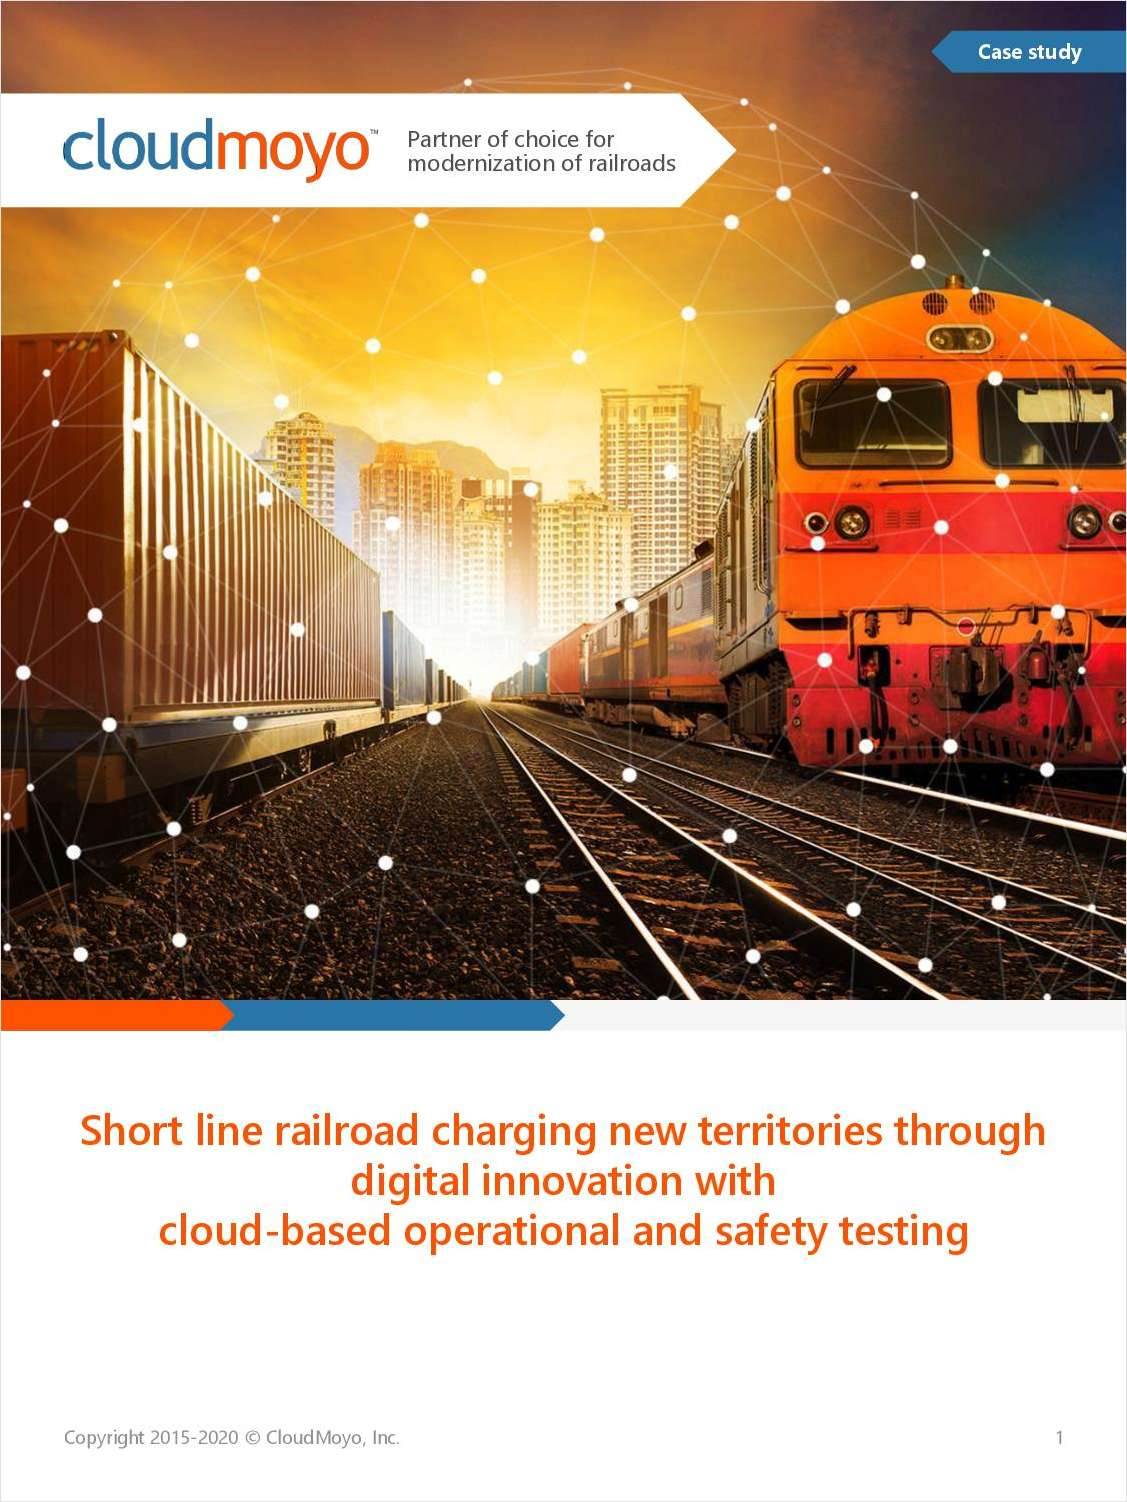 Short Line Railroad Charging New Territories Through Digital Innovation With Cloud-Based Operational and Safety Testing